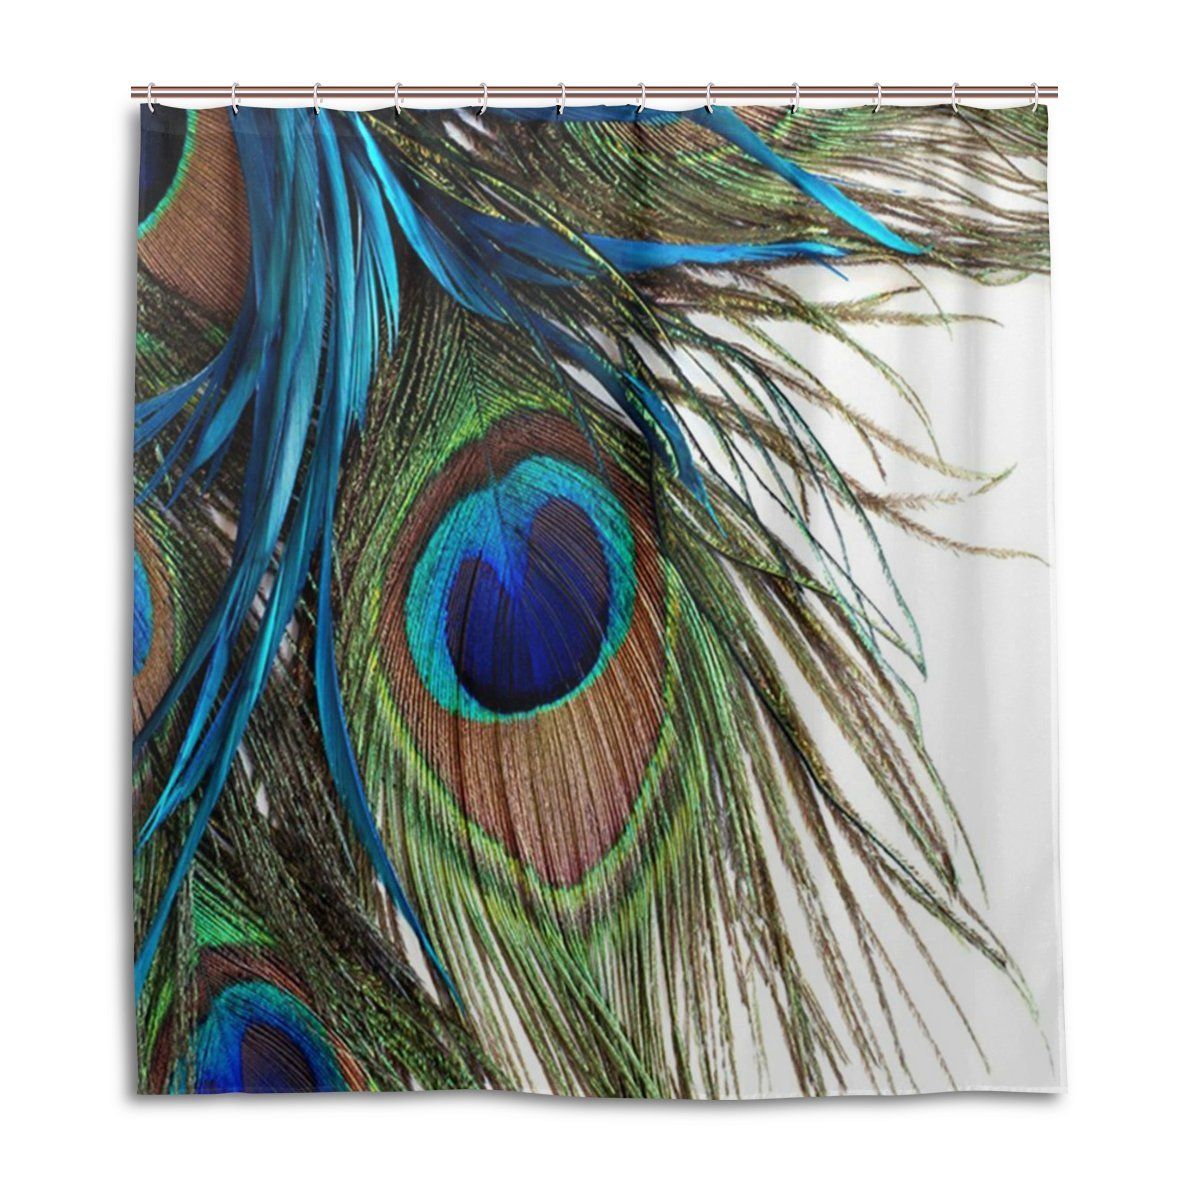 Buy Jstel Decor Shower Curtain Peacock Feathers Pattern